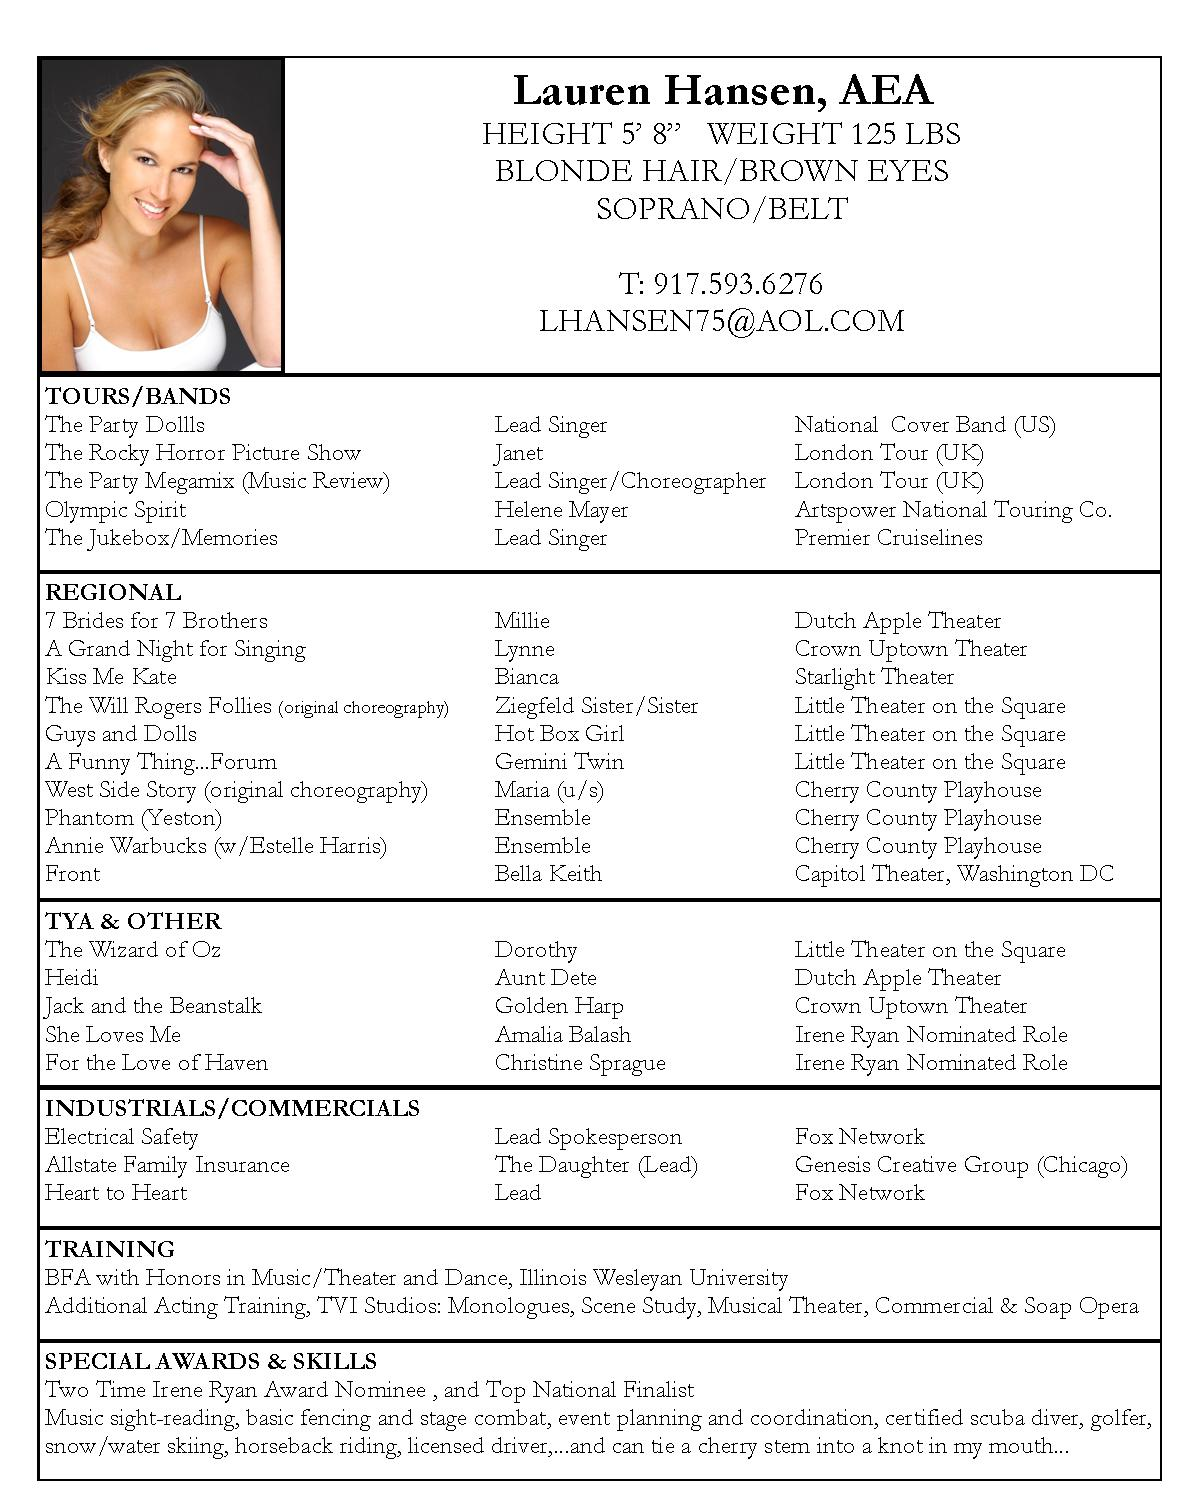 Opposenewapstandardsus  Pleasant Resume For Actors Resume For Acting Actors Acting Resume Template  With Goodlooking Acting Cv  Beginner Acting Resume Example For Inexperienced  With Easy On The Eye Customer Service Resume Objective Statement Also Resume For Federal Jobs In Addition I Need Help With My Resume And Free Resume Word Templates As Well As Sample Secretary Resume Additionally Resumes Skills From Kelseymarieco With Opposenewapstandardsus  Goodlooking Resume For Actors Resume For Acting Actors Acting Resume Template  With Easy On The Eye Acting Cv  Beginner Acting Resume Example For Inexperienced  And Pleasant Customer Service Resume Objective Statement Also Resume For Federal Jobs In Addition I Need Help With My Resume From Kelseymarieco